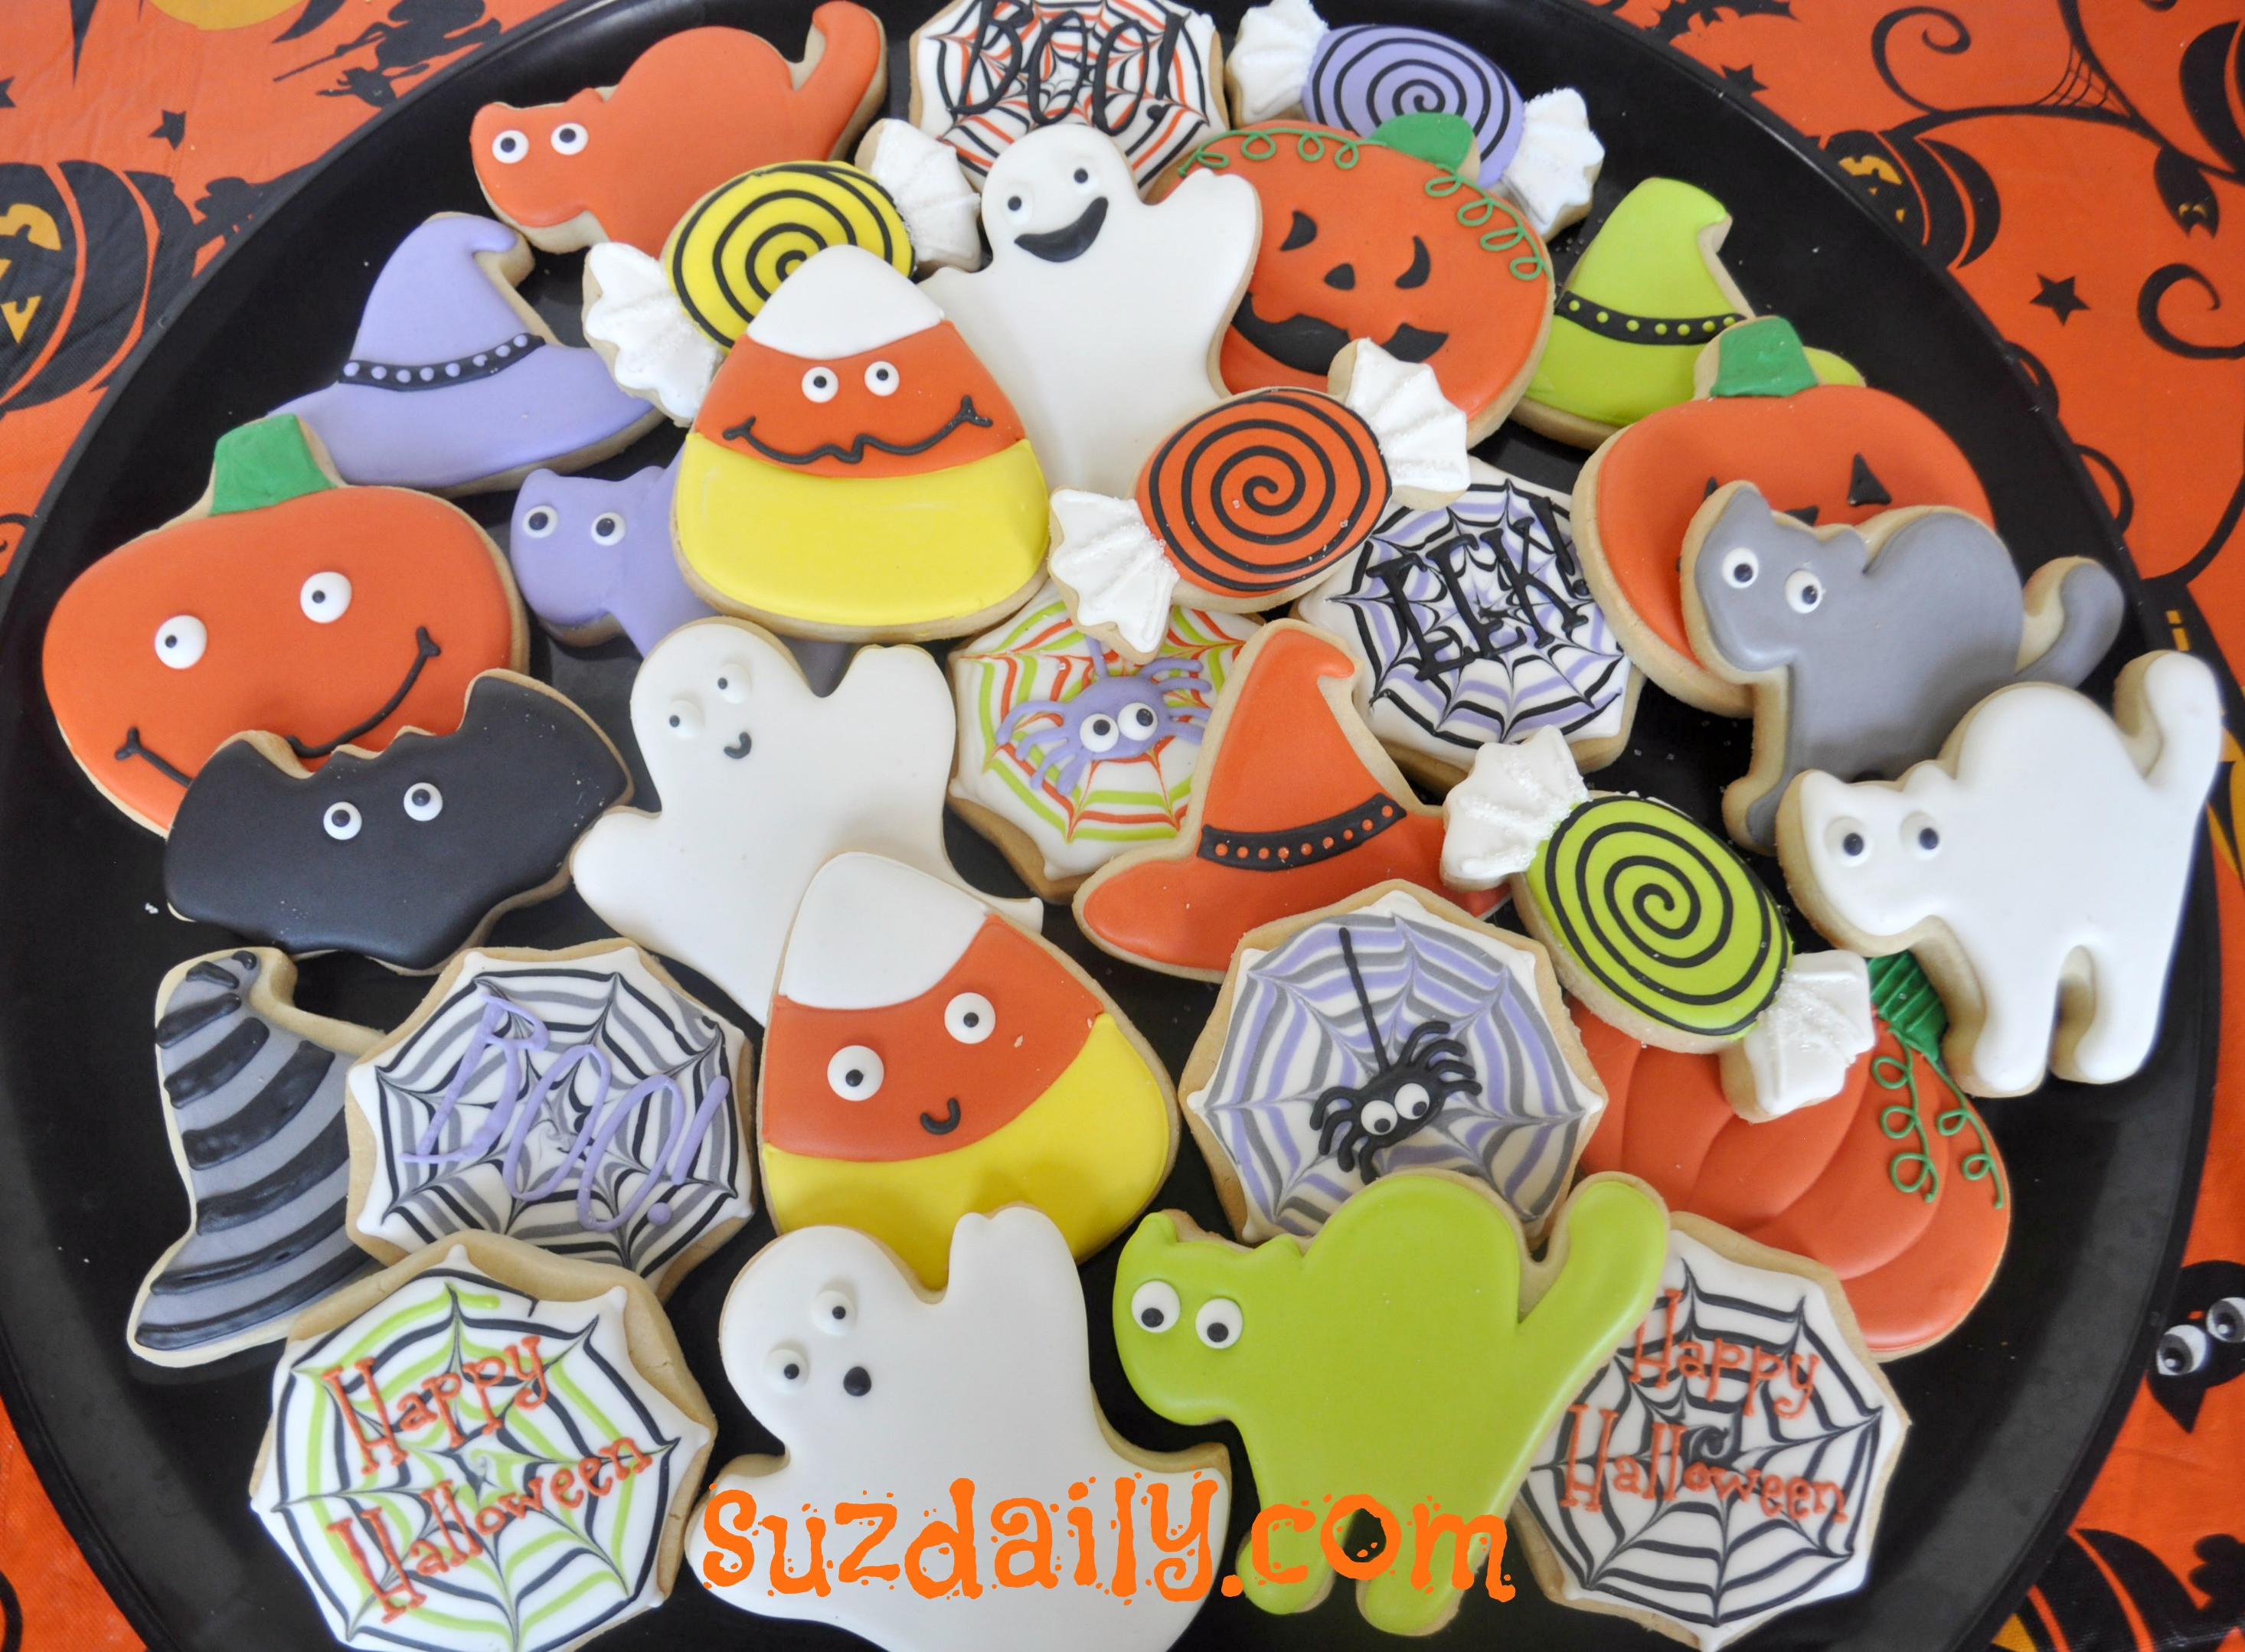 Halloween Cookies Decorating  Halloween – Suz Daily